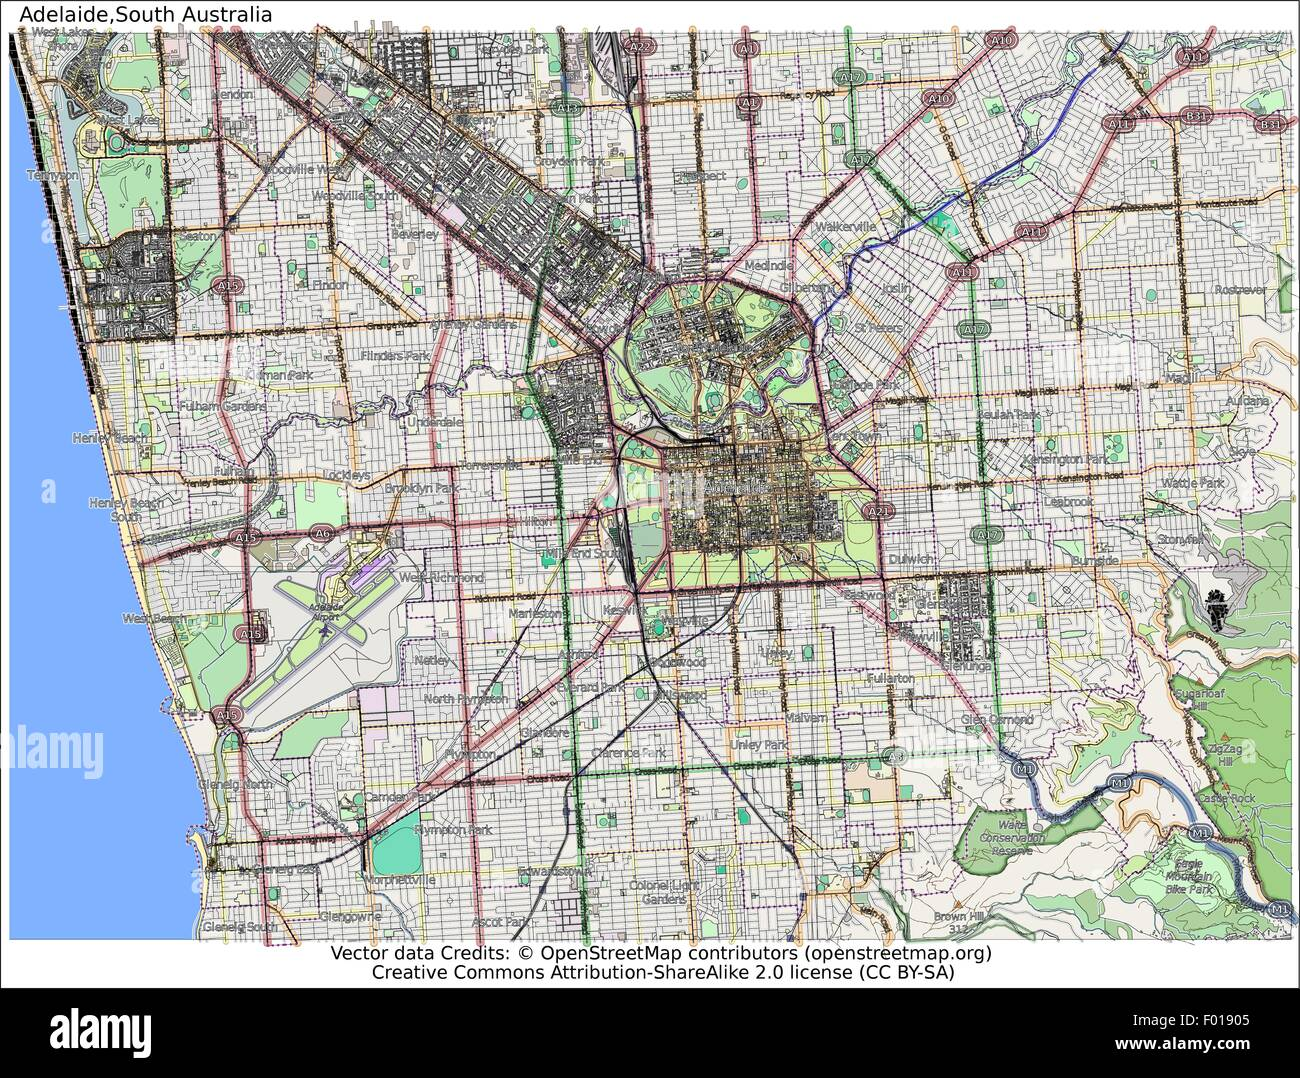 Adelaide south australia city map aerial view stock vector art adelaide south australia city map aerial view gumiabroncs Image collections